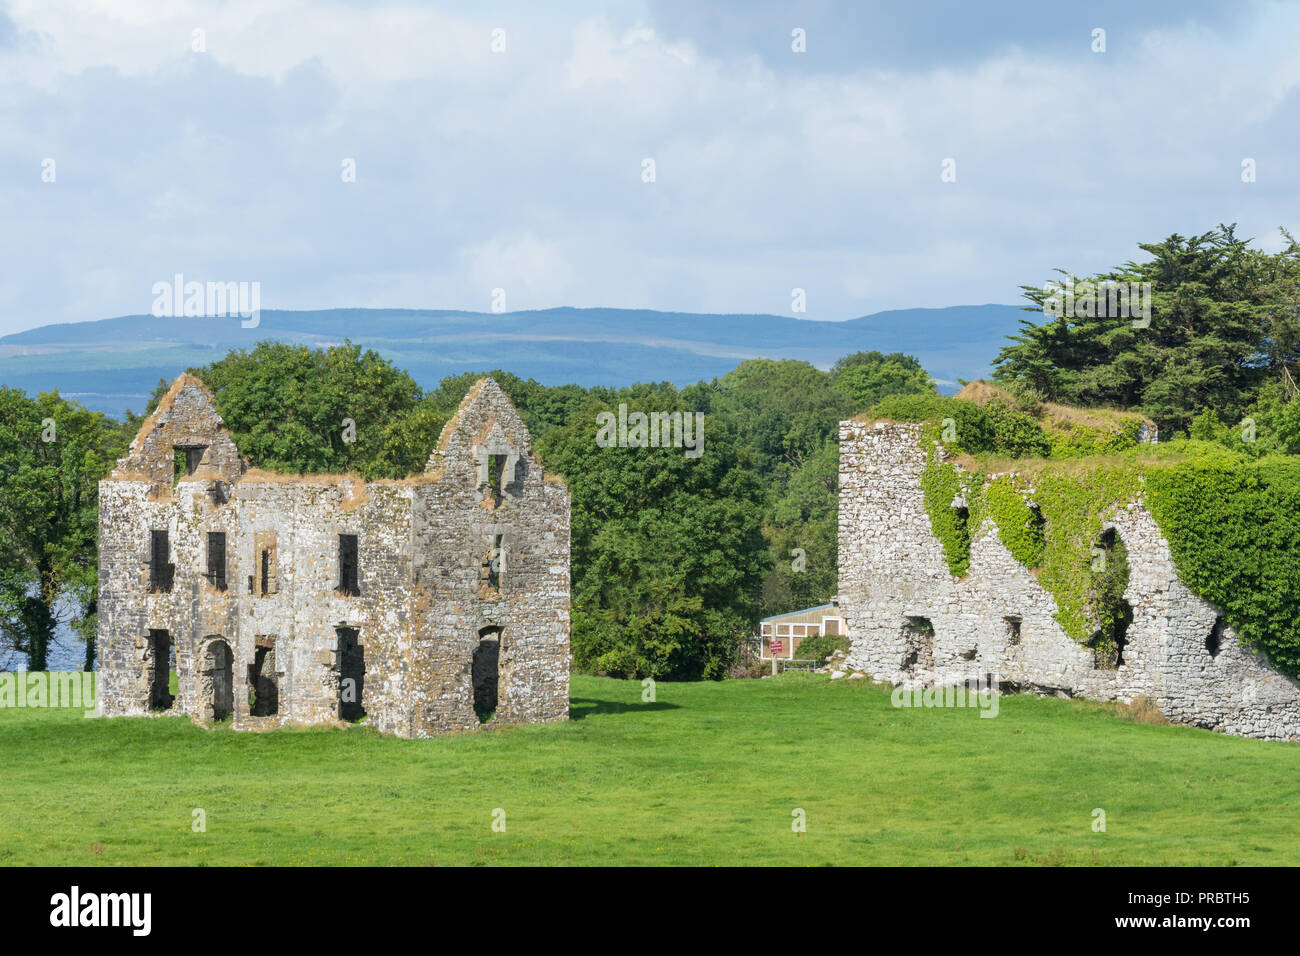 A view of Annaghkeen Castle, situated next to Lough Corrib in County Galway in Ireland. Stock Photo